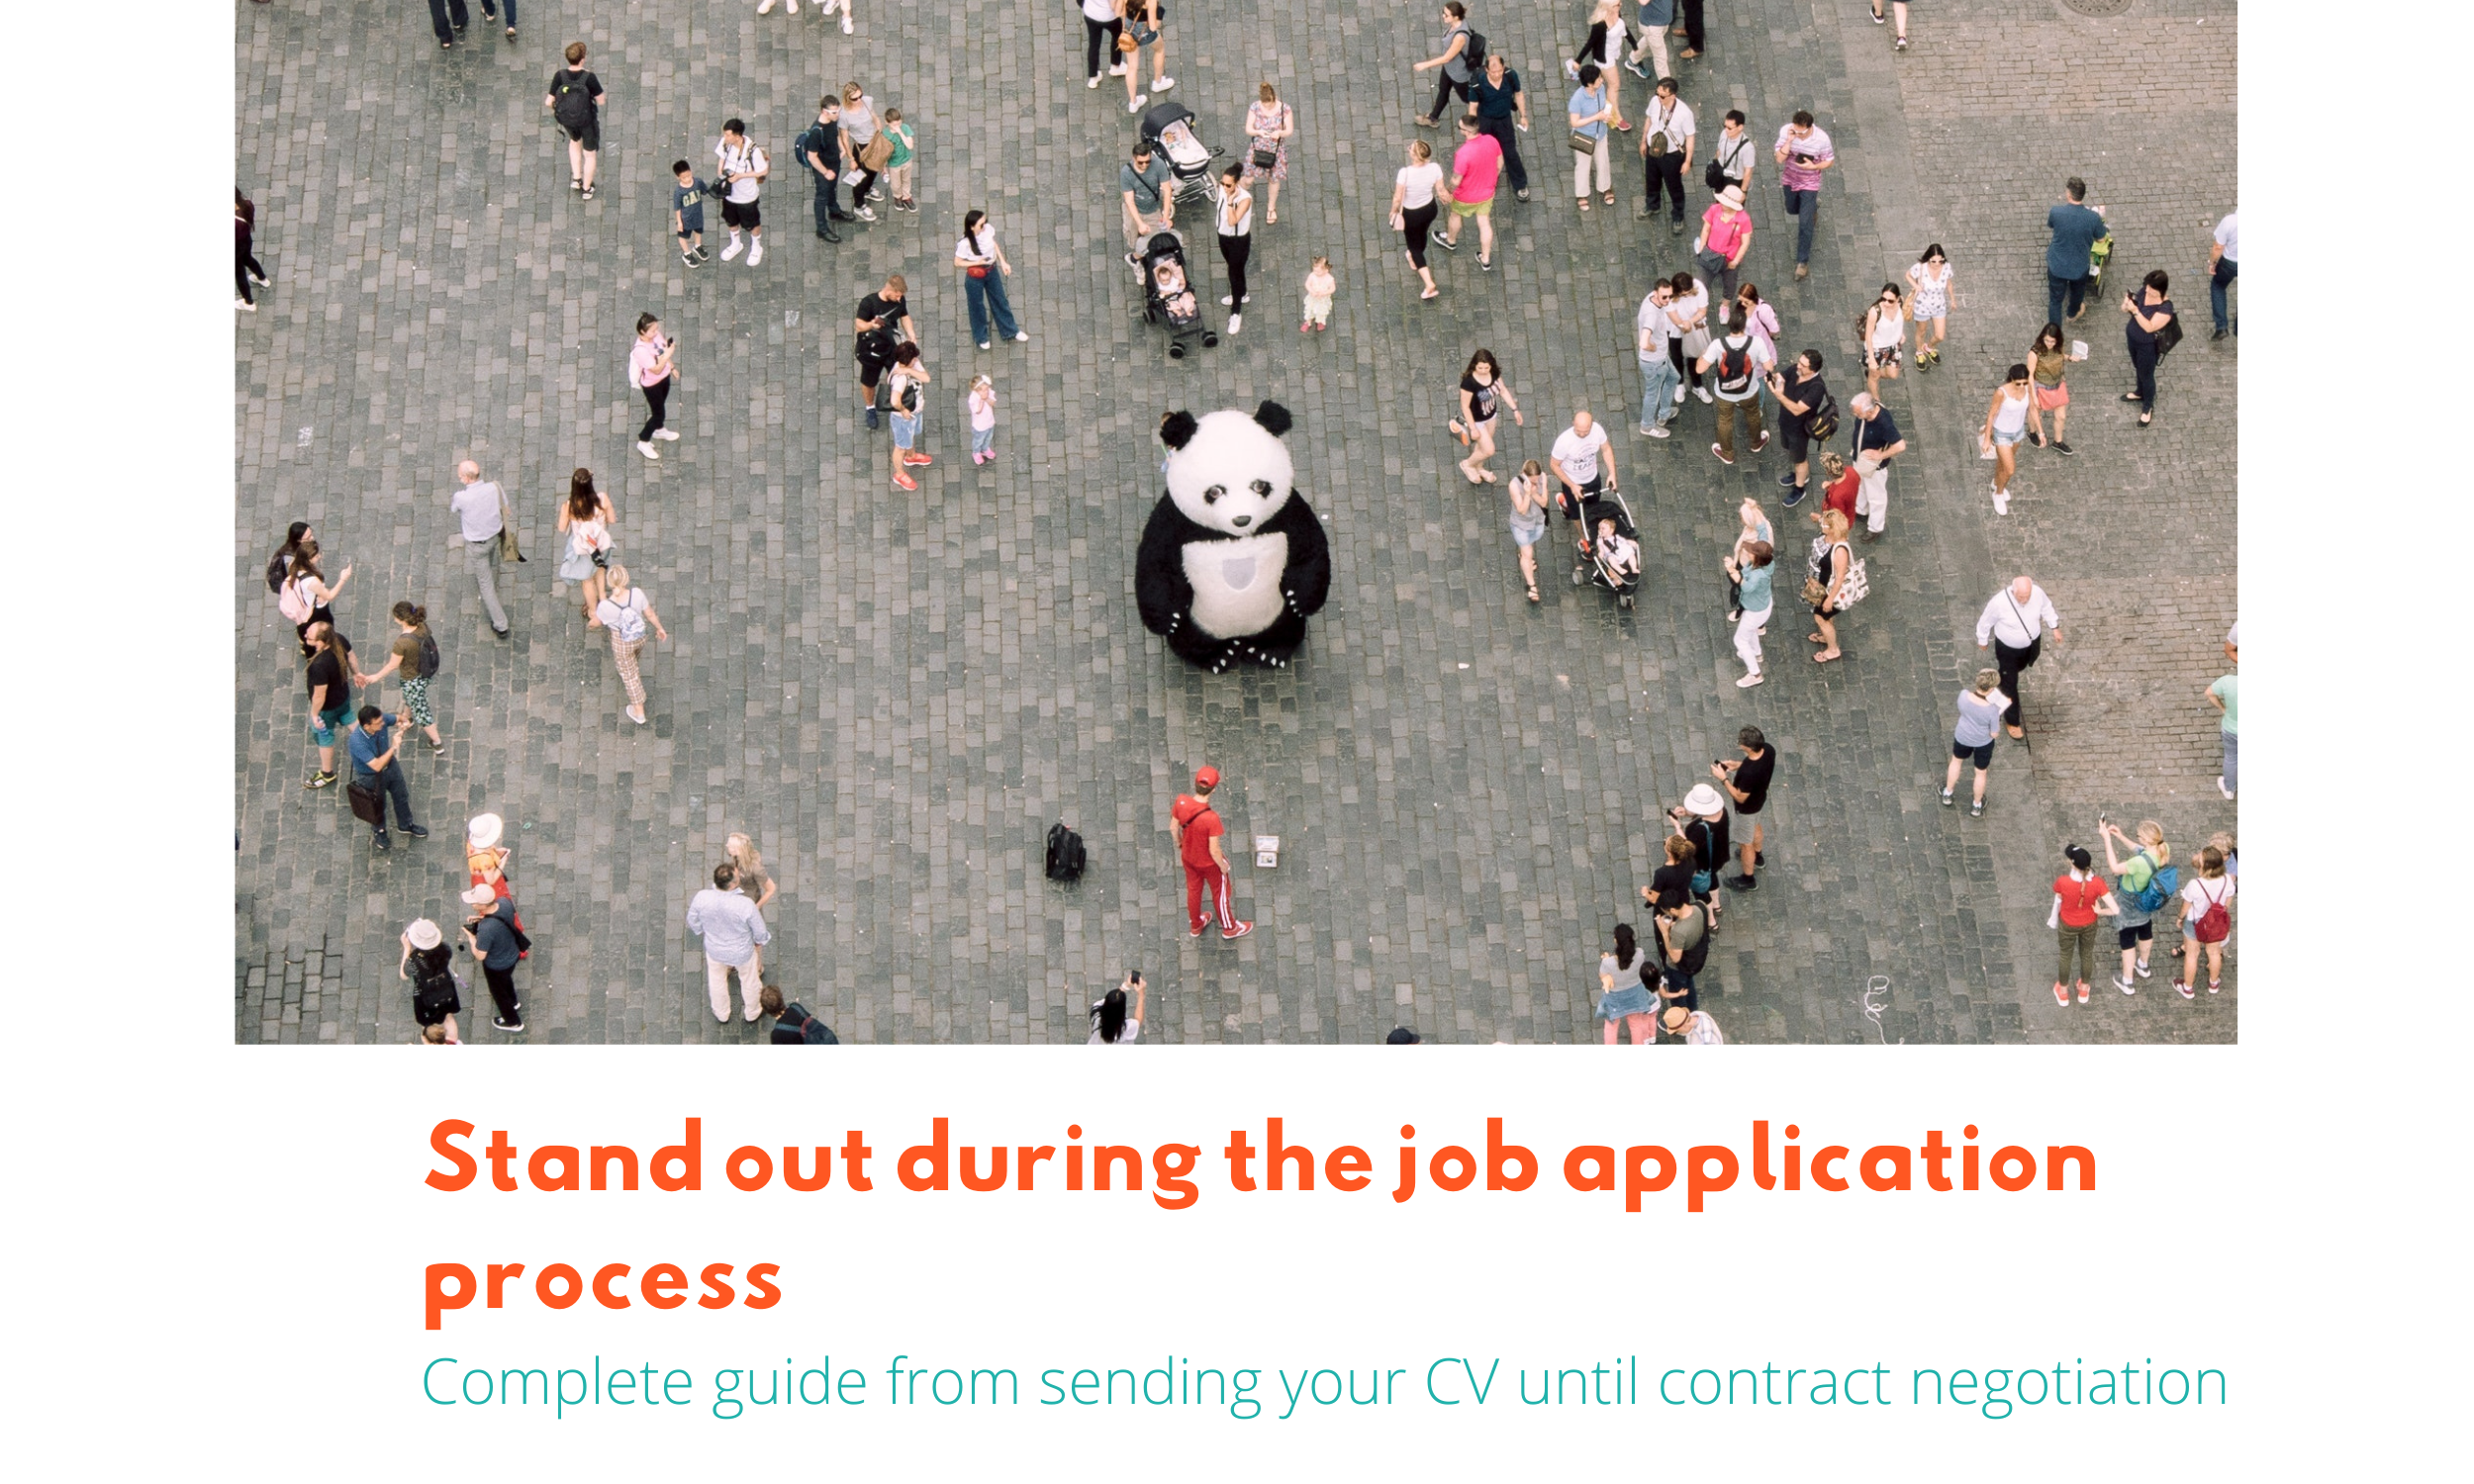 Stand out during the job application process